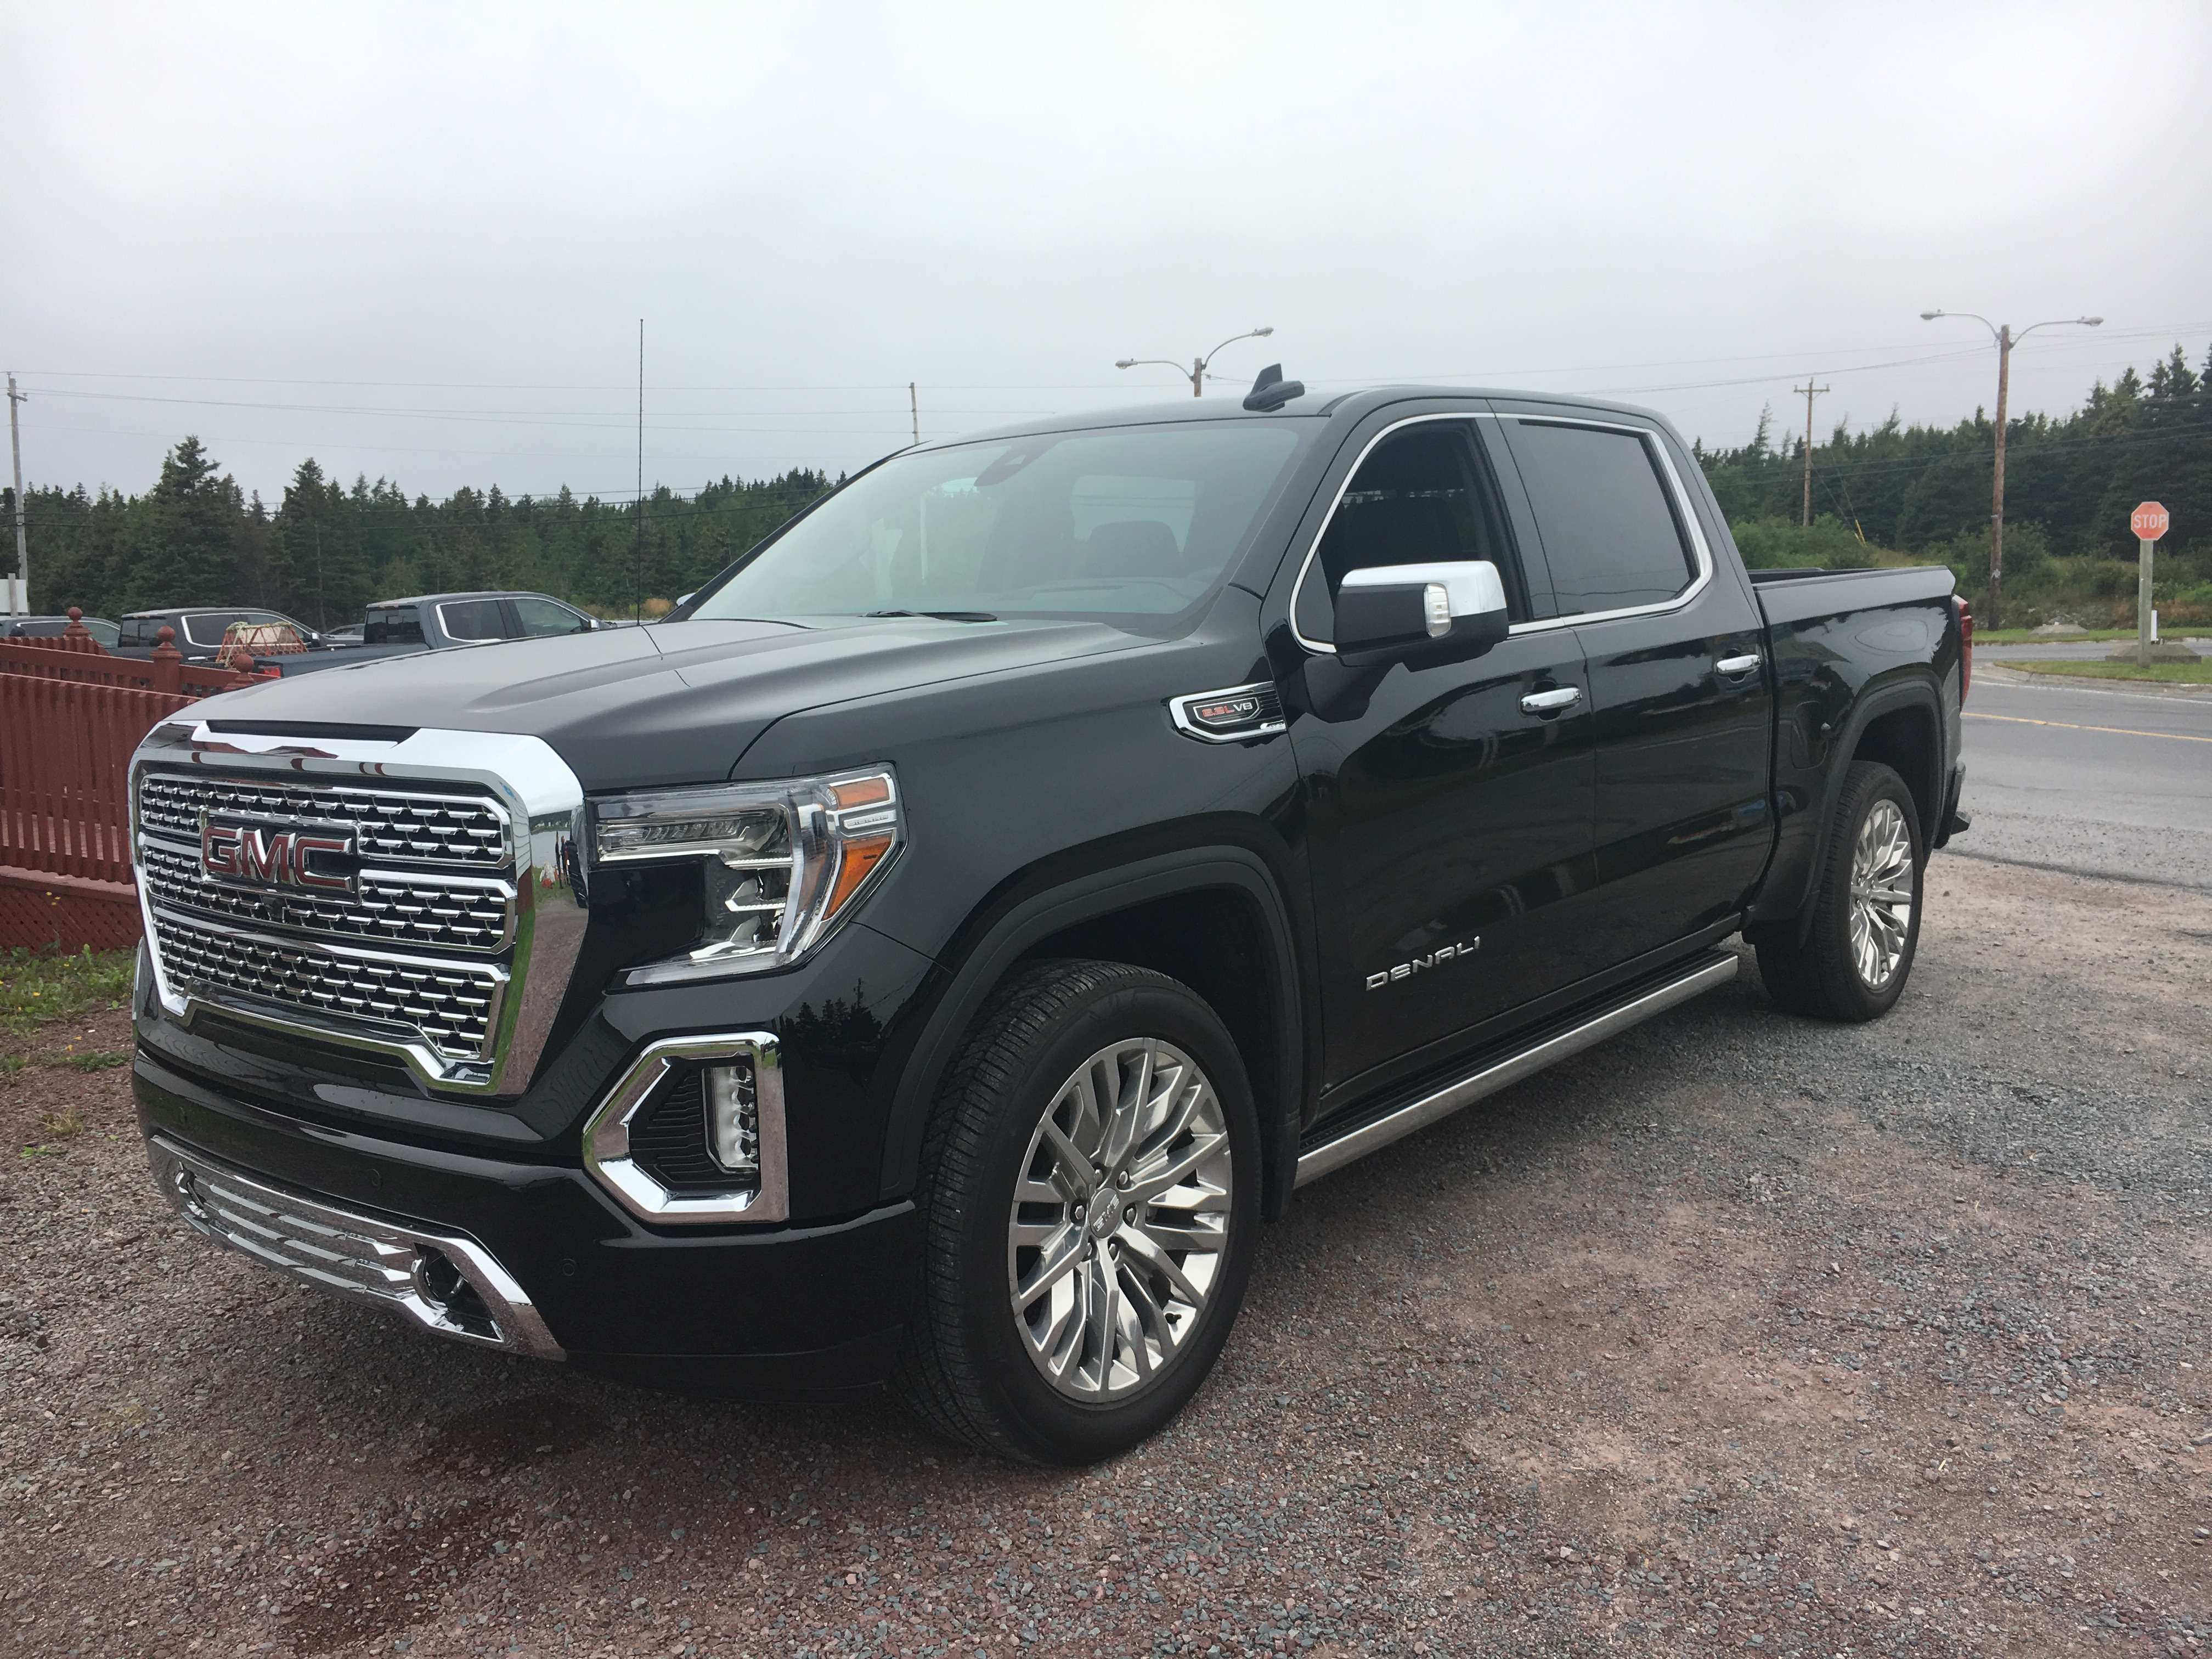 47 Concept of 2019 Gmc Order Pictures with 2019 Gmc Order